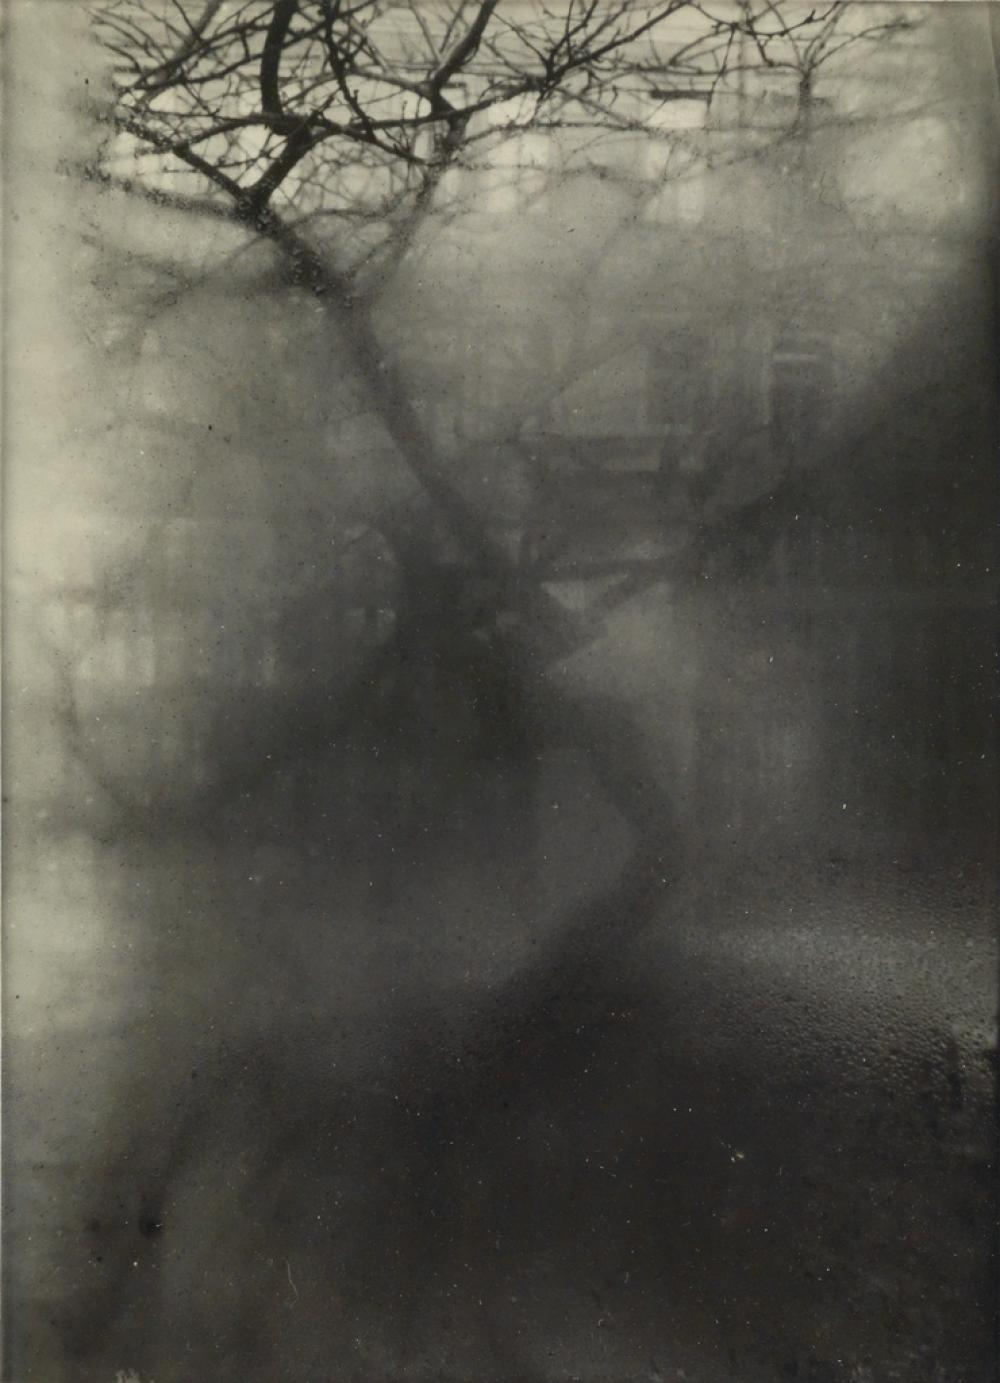 JOSEF SUDEK (1896-1976) From My Window.